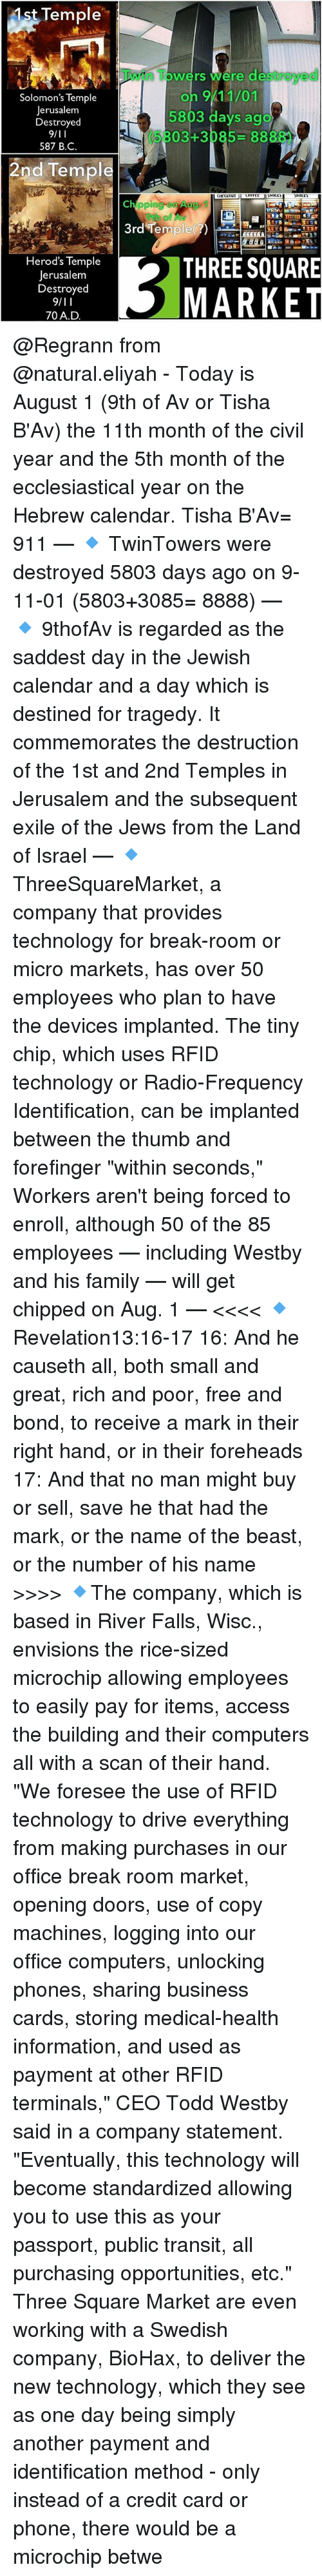 """9/11, Computers, and Family: 1st Temple  Twin Towers were destroyed  on 9/11/01  5803 days ago  (5803+3085 8888)  Solomon's Temple  Jerusalem  Destroyed  587 B.C.  2nd Temple  Chippin9  3rd Temple?)  Herod's Temple  Jerusalem  Destroyed  THREESQUARE  MARKET  70 A.D @Regrann from @natural.eliyah - Today is August 1 (9th of Av or Tisha B'Av) the 11th month of the civil year and the 5th month of the ecclesiastical year on the Hebrew calendar. Tisha B'Av= 911 — 🔹 TwinTowers were destroyed 5803 days ago on 9-11-01 (5803+3085= 8888) — 🔹 9thofAv is regarded as the saddest day in the Jewish calendar and a day which is destined for tragedy. It commemorates the destruction of the 1st and 2nd Temples in Jerusalem and the subsequent exile of the Jews from the Land of Israel — 🔹 ThreeSquareMarket, a company that provides technology for break-room or micro markets, has over 50 employees who plan to have the devices implanted. The tiny chip, which uses RFID technology or Radio-Frequency Identification, can be implanted between the thumb and forefinger """"within seconds,"""" Workers aren't being forced to enroll, although 50 of the 85 employees — including Westby and his family — will get chipped on Aug. 1 — <<<< 🔹 Revelation13:16-17 16: And he causeth all, both small and great, rich and poor, free and bond, to receive a mark in their right hand, or in their foreheads 17: And that no man might buy or sell, save he that had the mark, or the name of the beast, or the number of his name >>>> 🔹The company, which is based in River Falls, Wisc., envisions the rice-sized microchip allowing employees to easily pay for items, access the building and their computers all with a scan of their hand. """"We foresee the use of RFID technology to drive everything from making purchases in our office break room market, opening doors, use of copy machines, logging into our office computers, unlocking phones, sharing business cards, storing medical-health information, and used as payment at other RFID termina"""